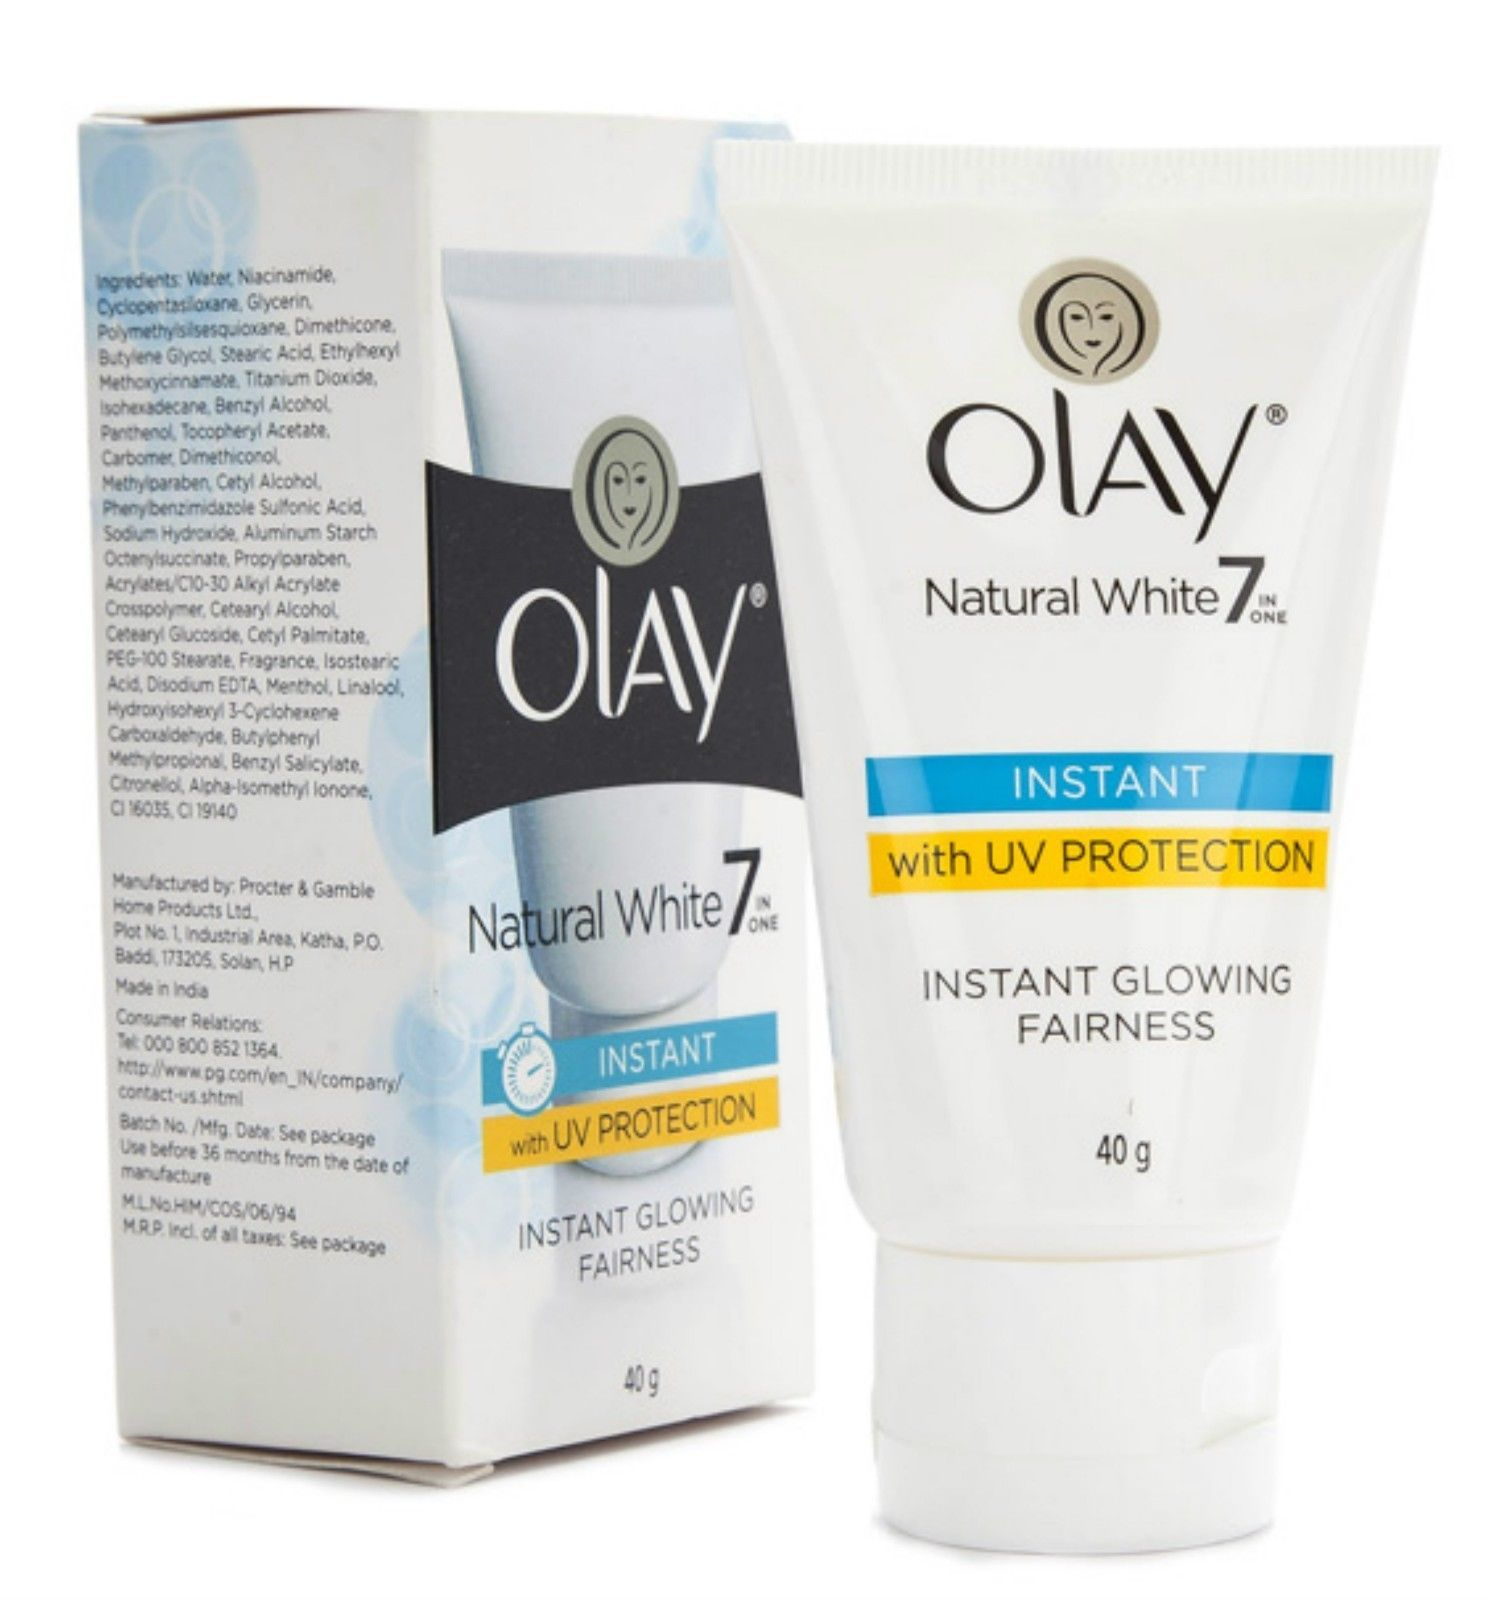 Olay Natural White  Instant Glowing Fairness Cream, 40gm